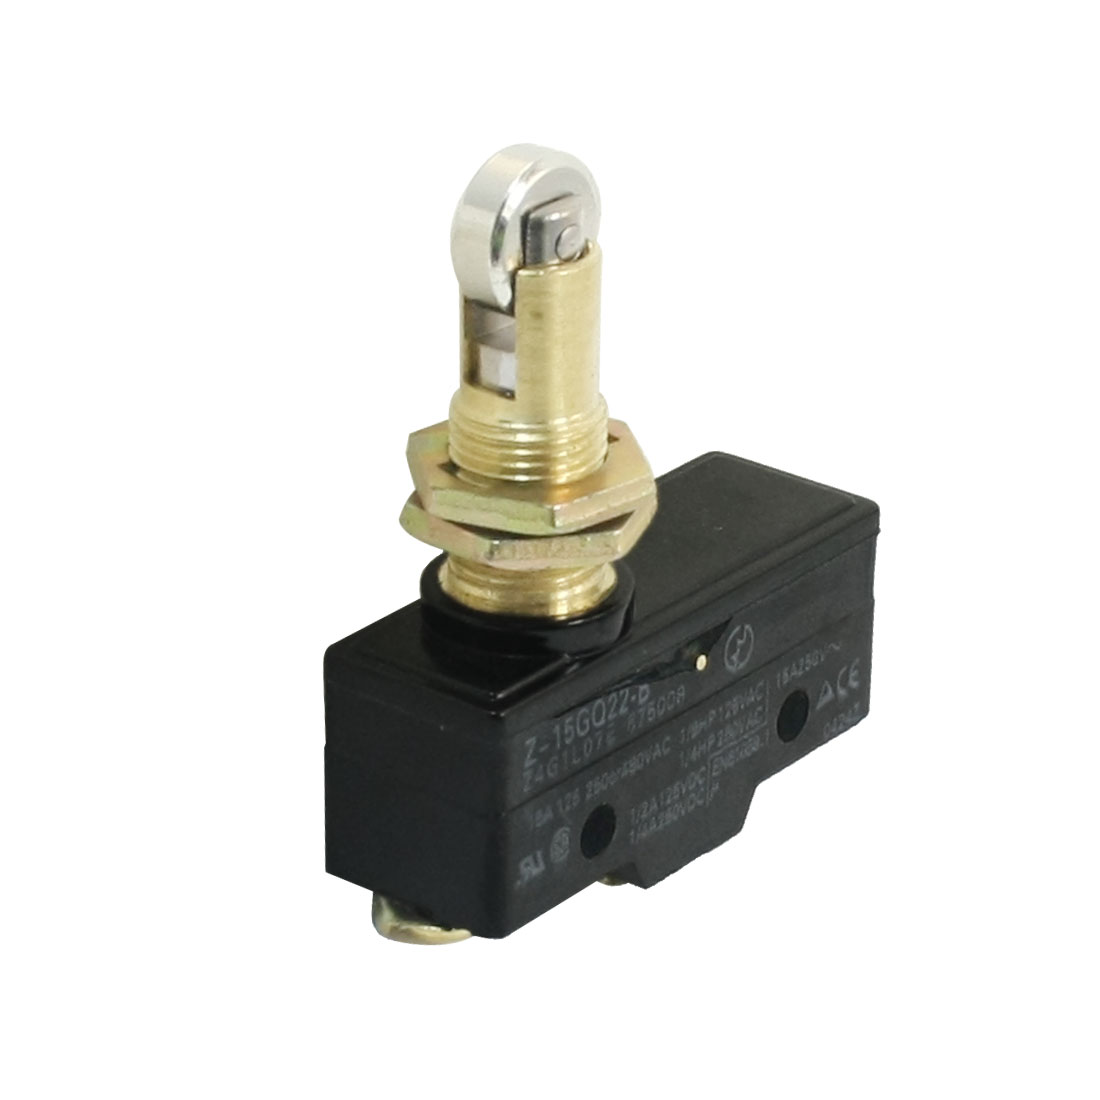 AC 125V/250V/480V 15A Z-15GQ22-B 3 Screw Terminals SPSD 1NO 1NC 12mm Thread Panel Mount Roller Plunger Basic Limit Switch